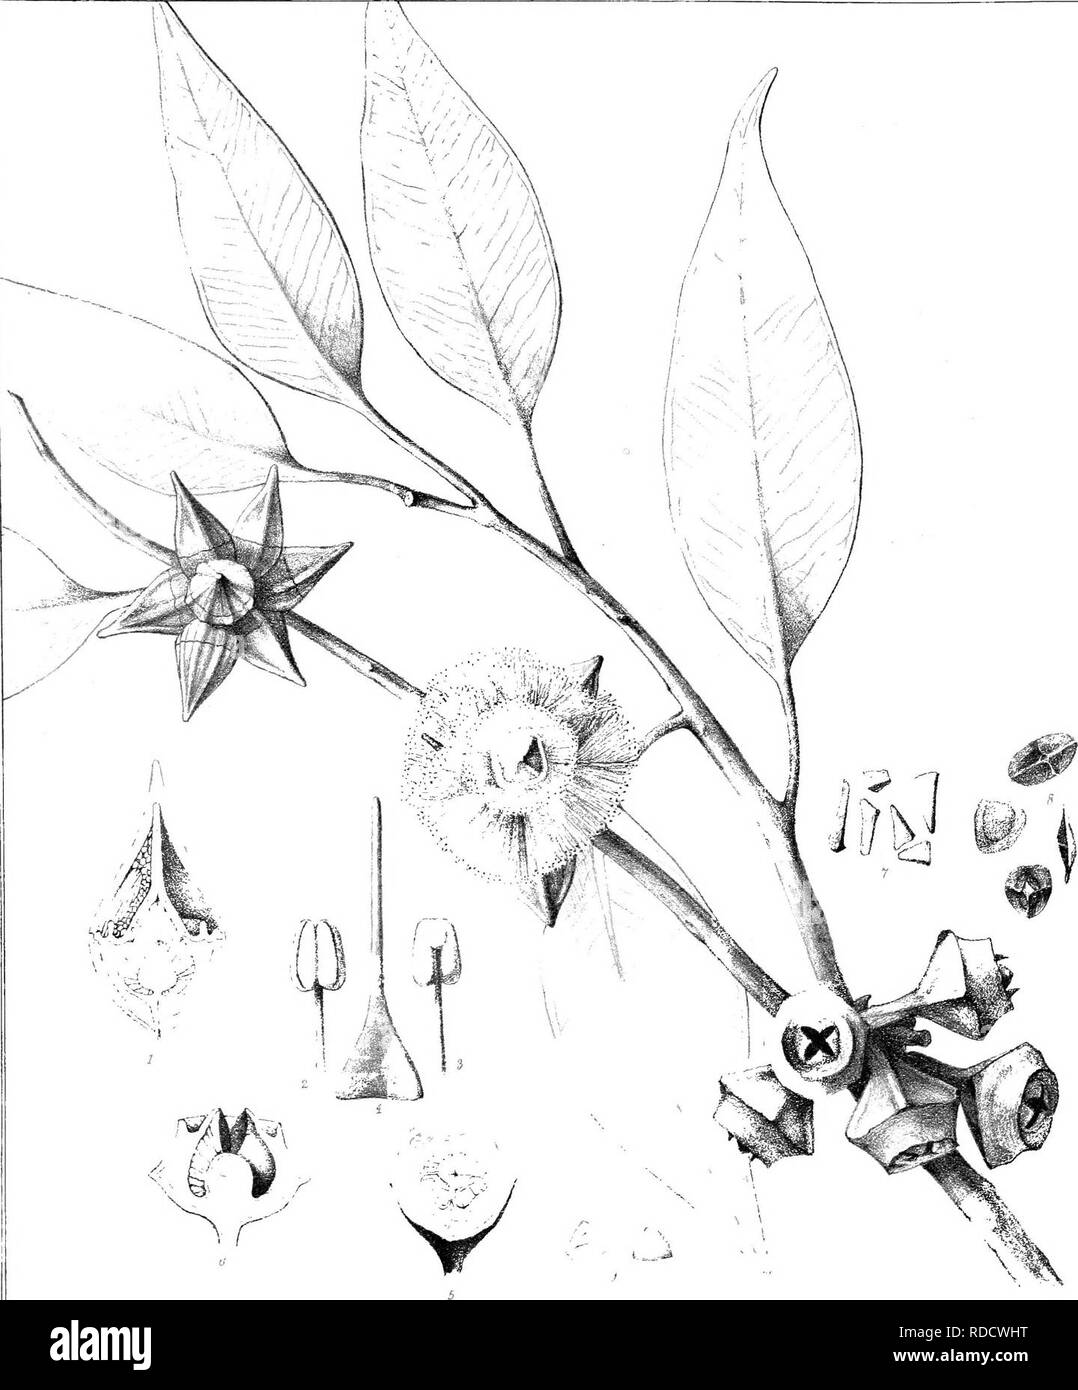 . Eucalyptographia. A descriptive atlas of the eucalypts of Australia and the adjoining islands;. Eucalyptus; Botany. m. •.A.,r-.n.lr-t> -, :-t>, f-.-r,nMu.= i| l-m^]:fi}mi) })2iejry;p}iyllii./^ CTroedi »r'^' ^--f^. Please note that these images are extracted from scanned page images that may have been digitally enhanced for readability - coloration and appearance of these illustrations may not perfectly resemble the original work.. Mueller, Ferdinand von, 1825-1896. Melbourne, J. Ferres, Govt. Print; [etc. ,etc. ] - Stock Image